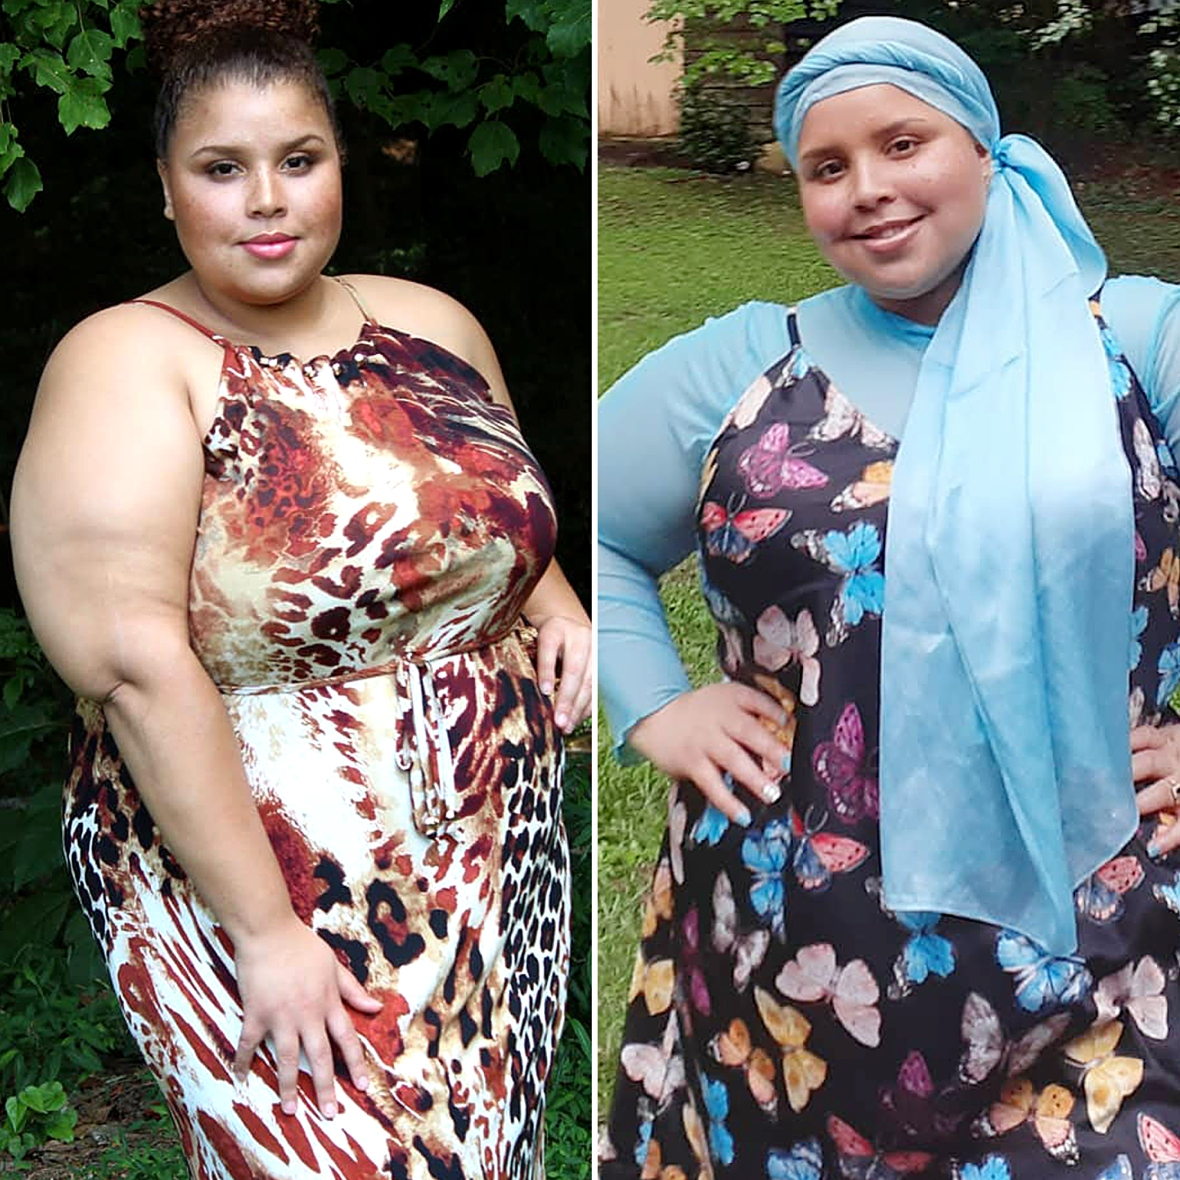 90 Day Fiance Star Chantel Sister Winter Reveals 50-Pound Weight Loss